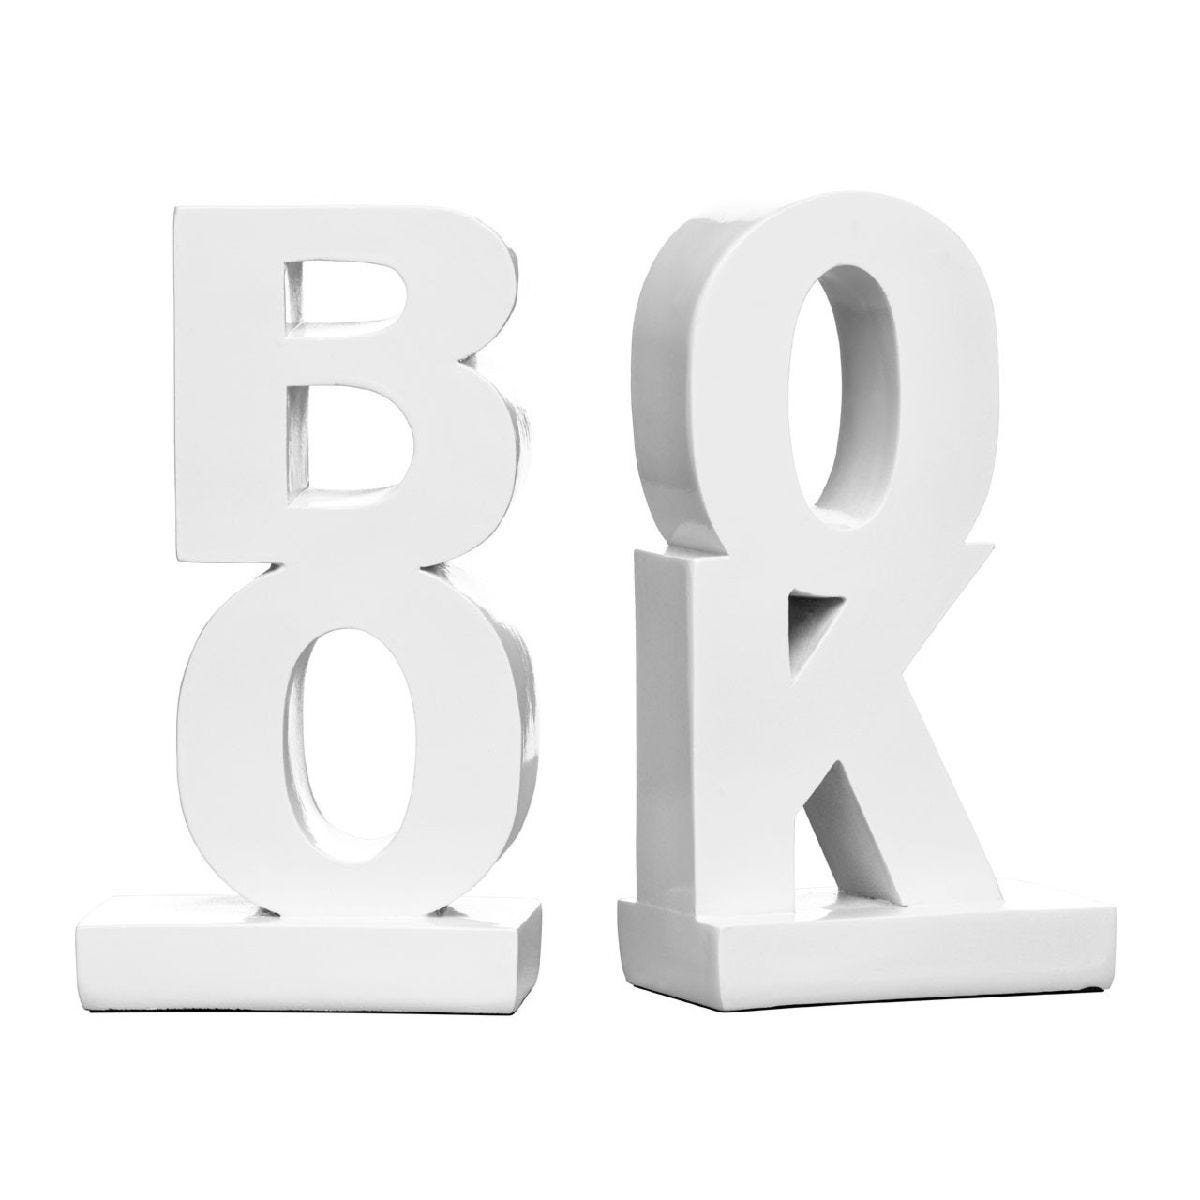 Premier Housewares  'Book' Bookends Set of 2 - Polyresin White High Gloss